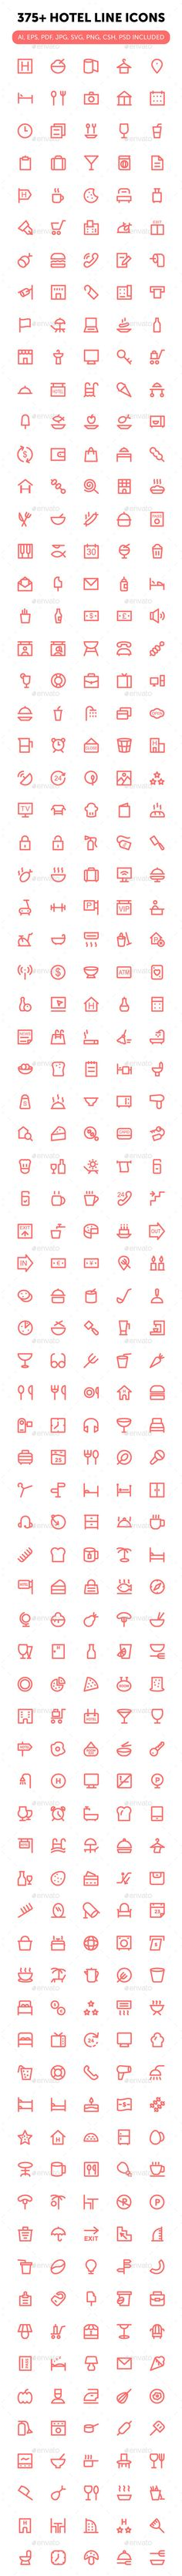 375+ Hotel Line Icons. Download here: http://graphicriver.net/item/375-hotel-line-icons/16565759?ref=ksioks